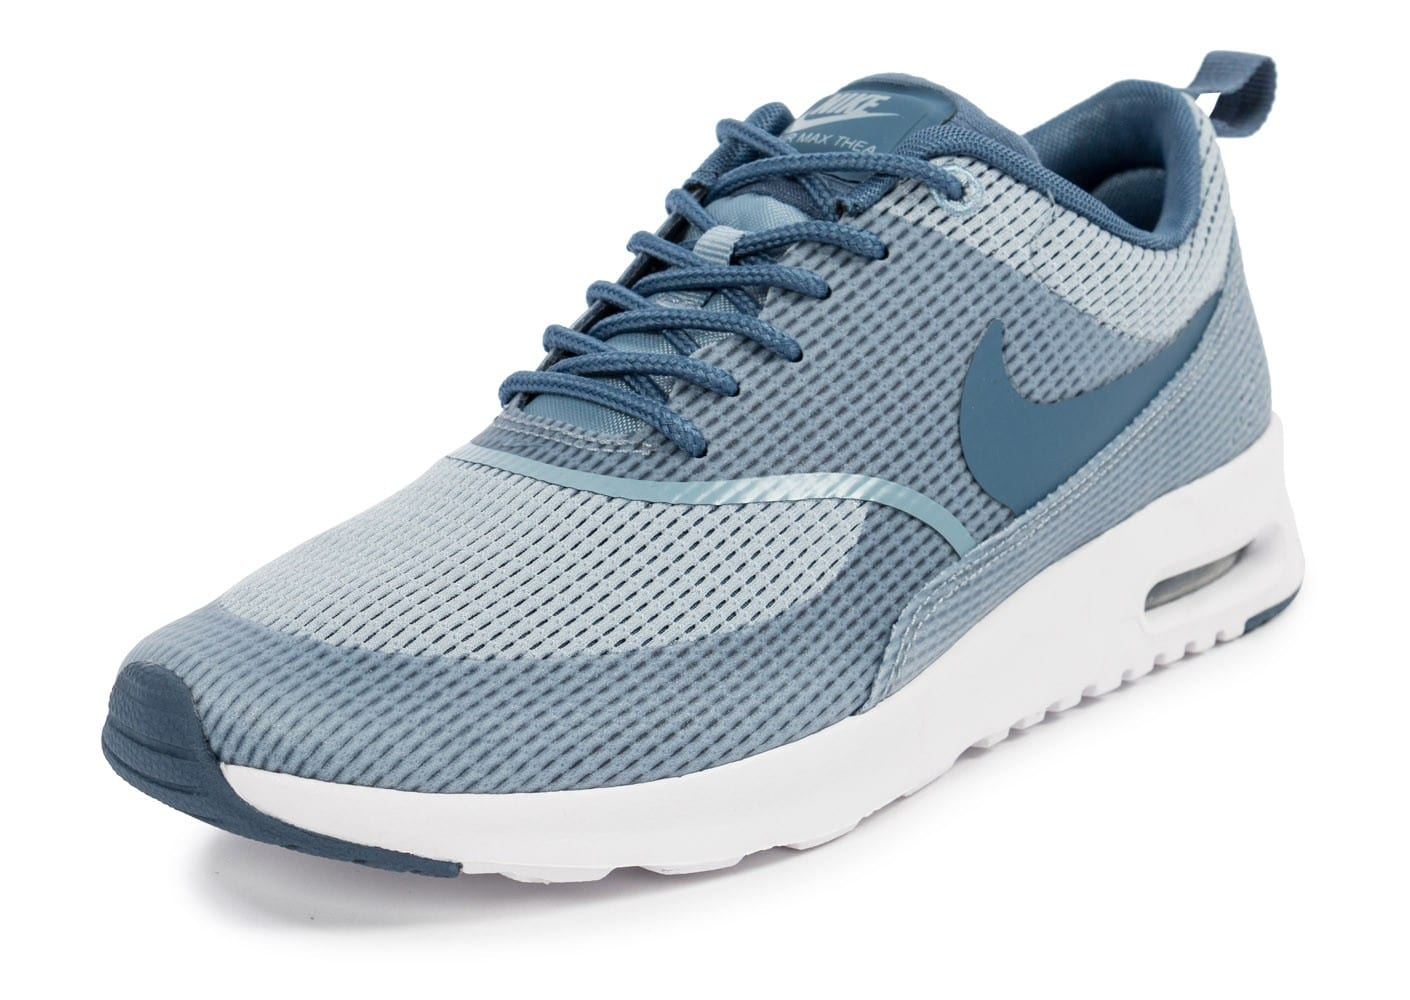 nike air max thea txt blue grey chaussures chaussures chausport. Black Bedroom Furniture Sets. Home Design Ideas